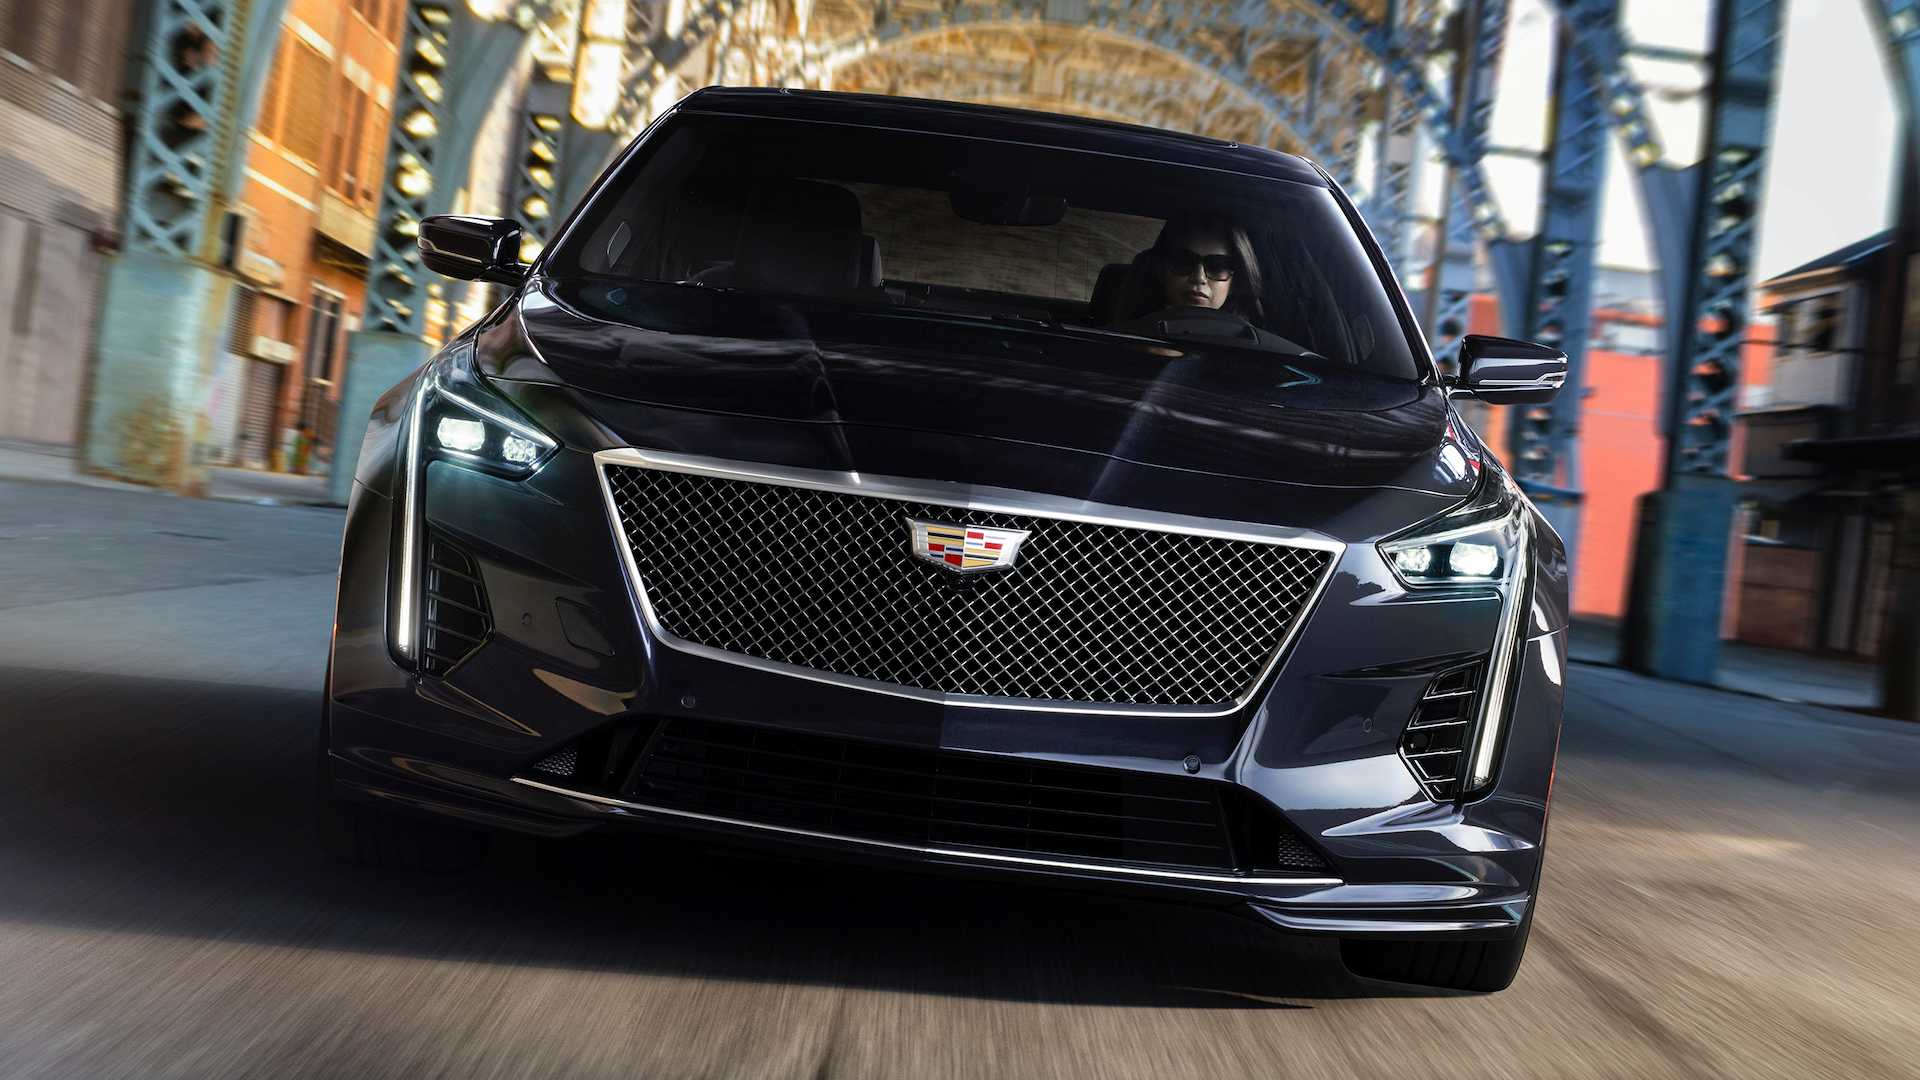 Cadillac Blackwing V8 Torque Rating Is Higher Than Estimated